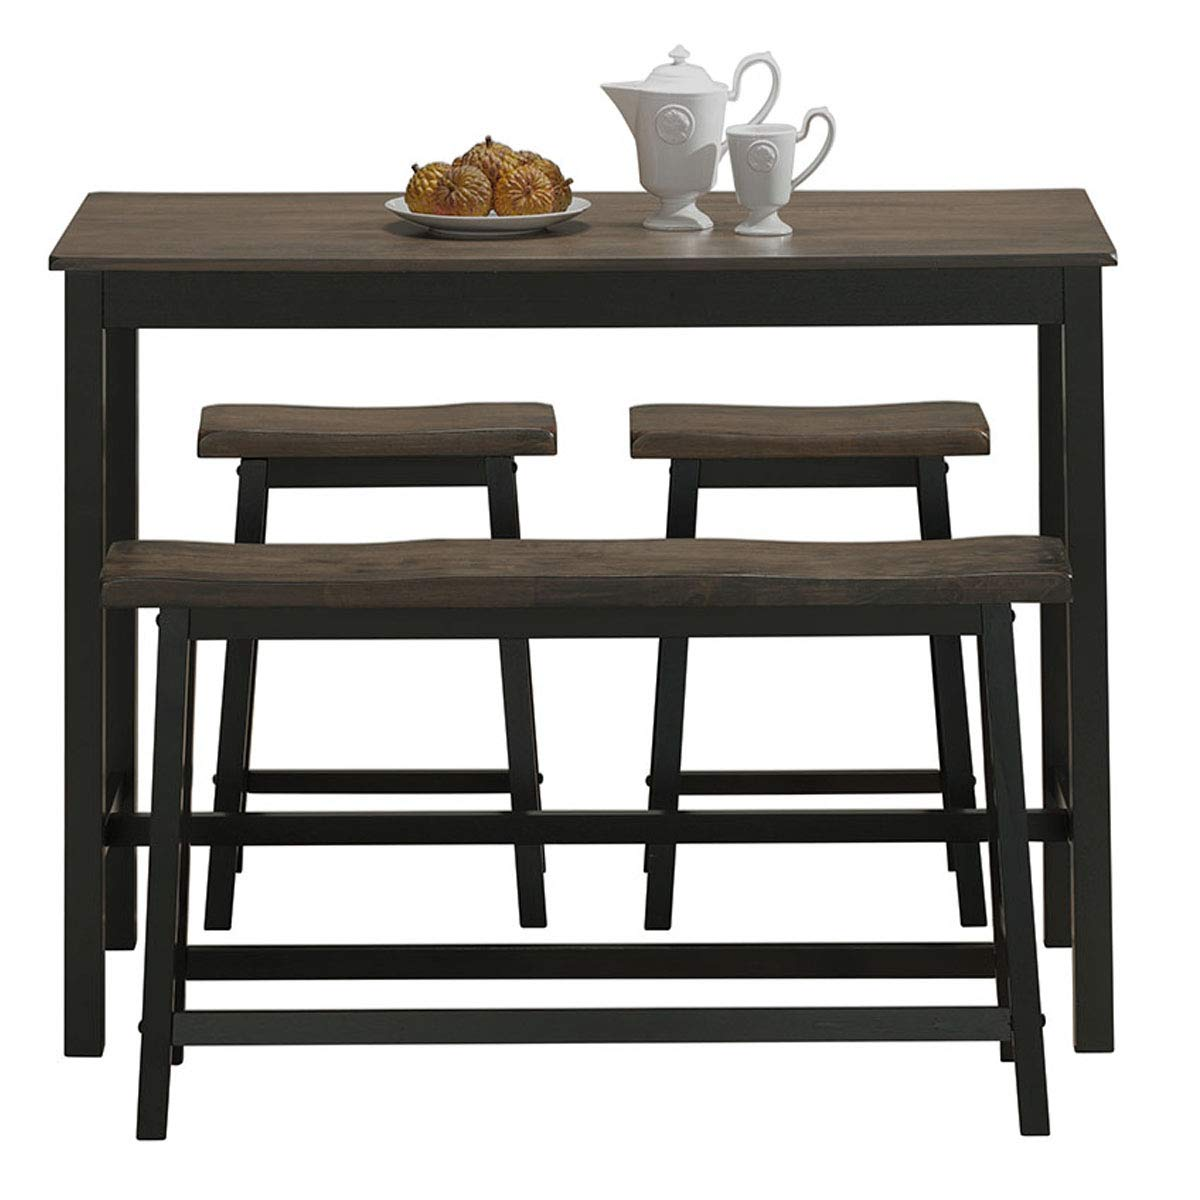 COSTWAY 4-Piece Solid Wood Dining Table Set, Counter Height Dining Furniture with One Bench and Two Saddle Stools, Industrial Style with Foot Pads, Ideal for Home, Kitchen, Living Room (Gray & Brown) by COSTWAY